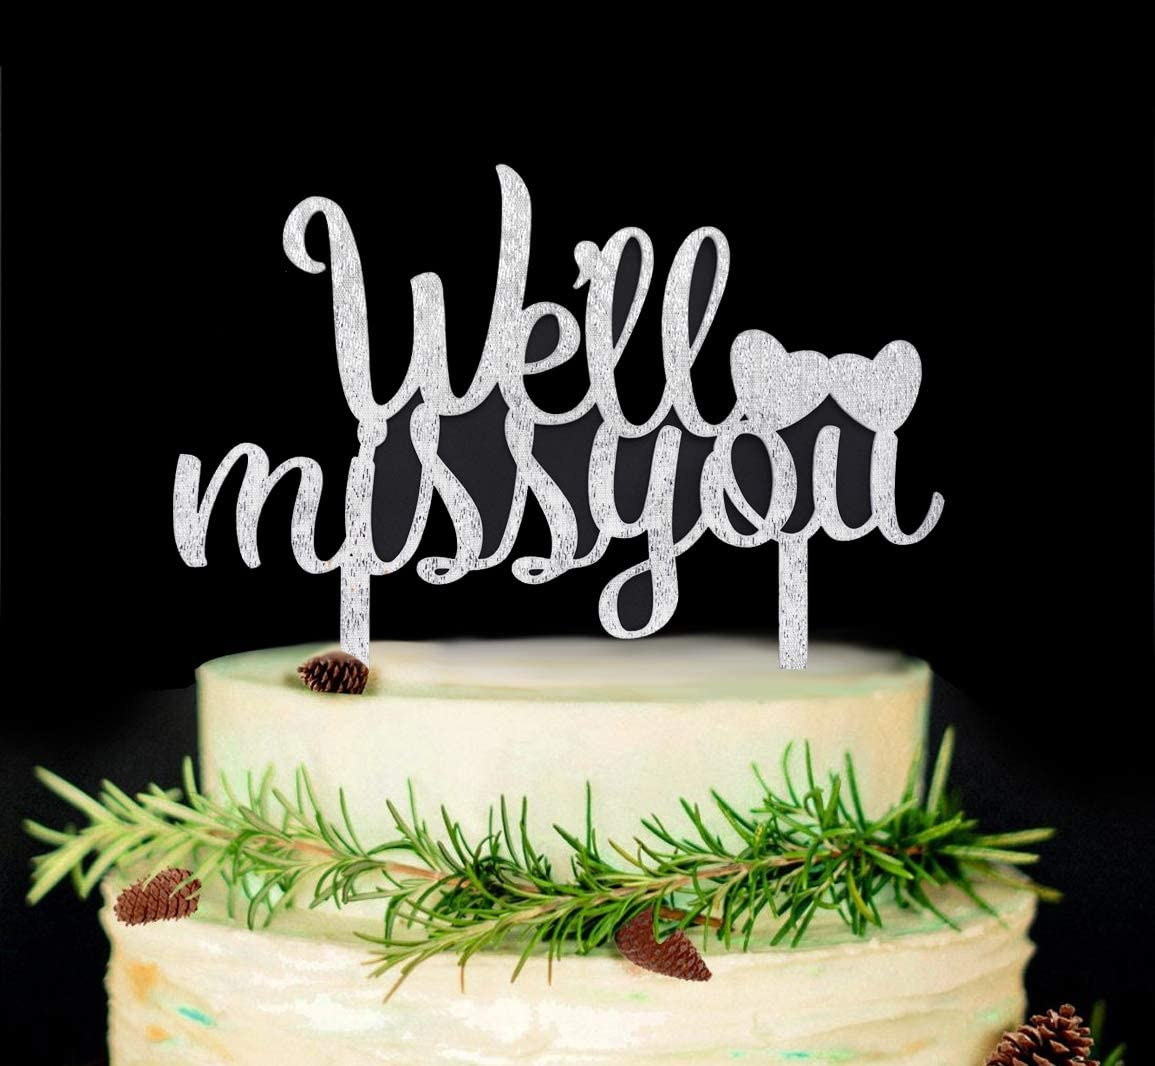 Retirement Well Miss You Acrylic Cake Topper for Farewell Graduation Party Decorations Rose Gold Job Change